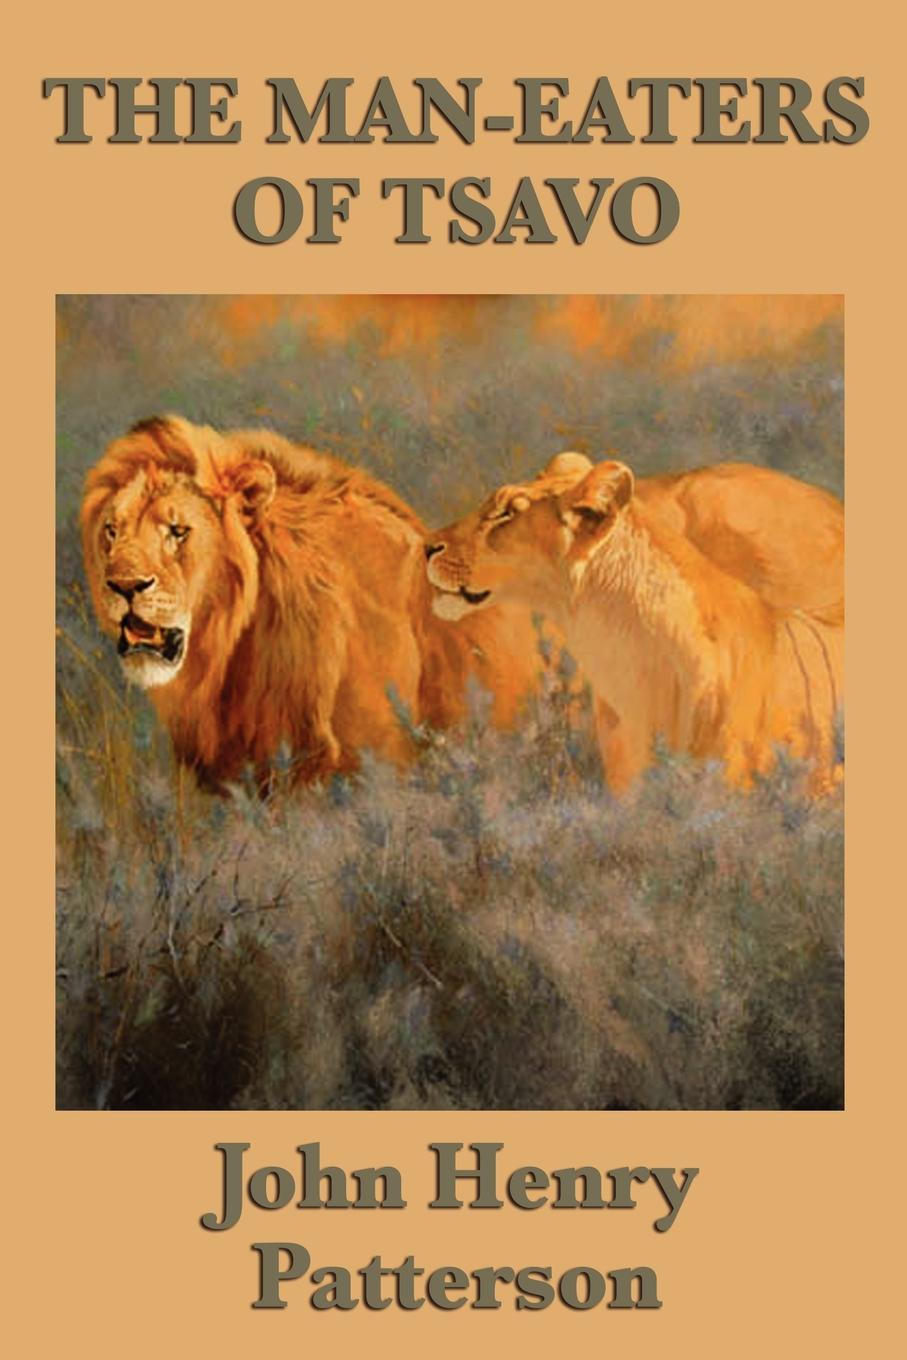 цены на John Henry Patterson The Man-eaters of Tsavo  в интернет-магазинах